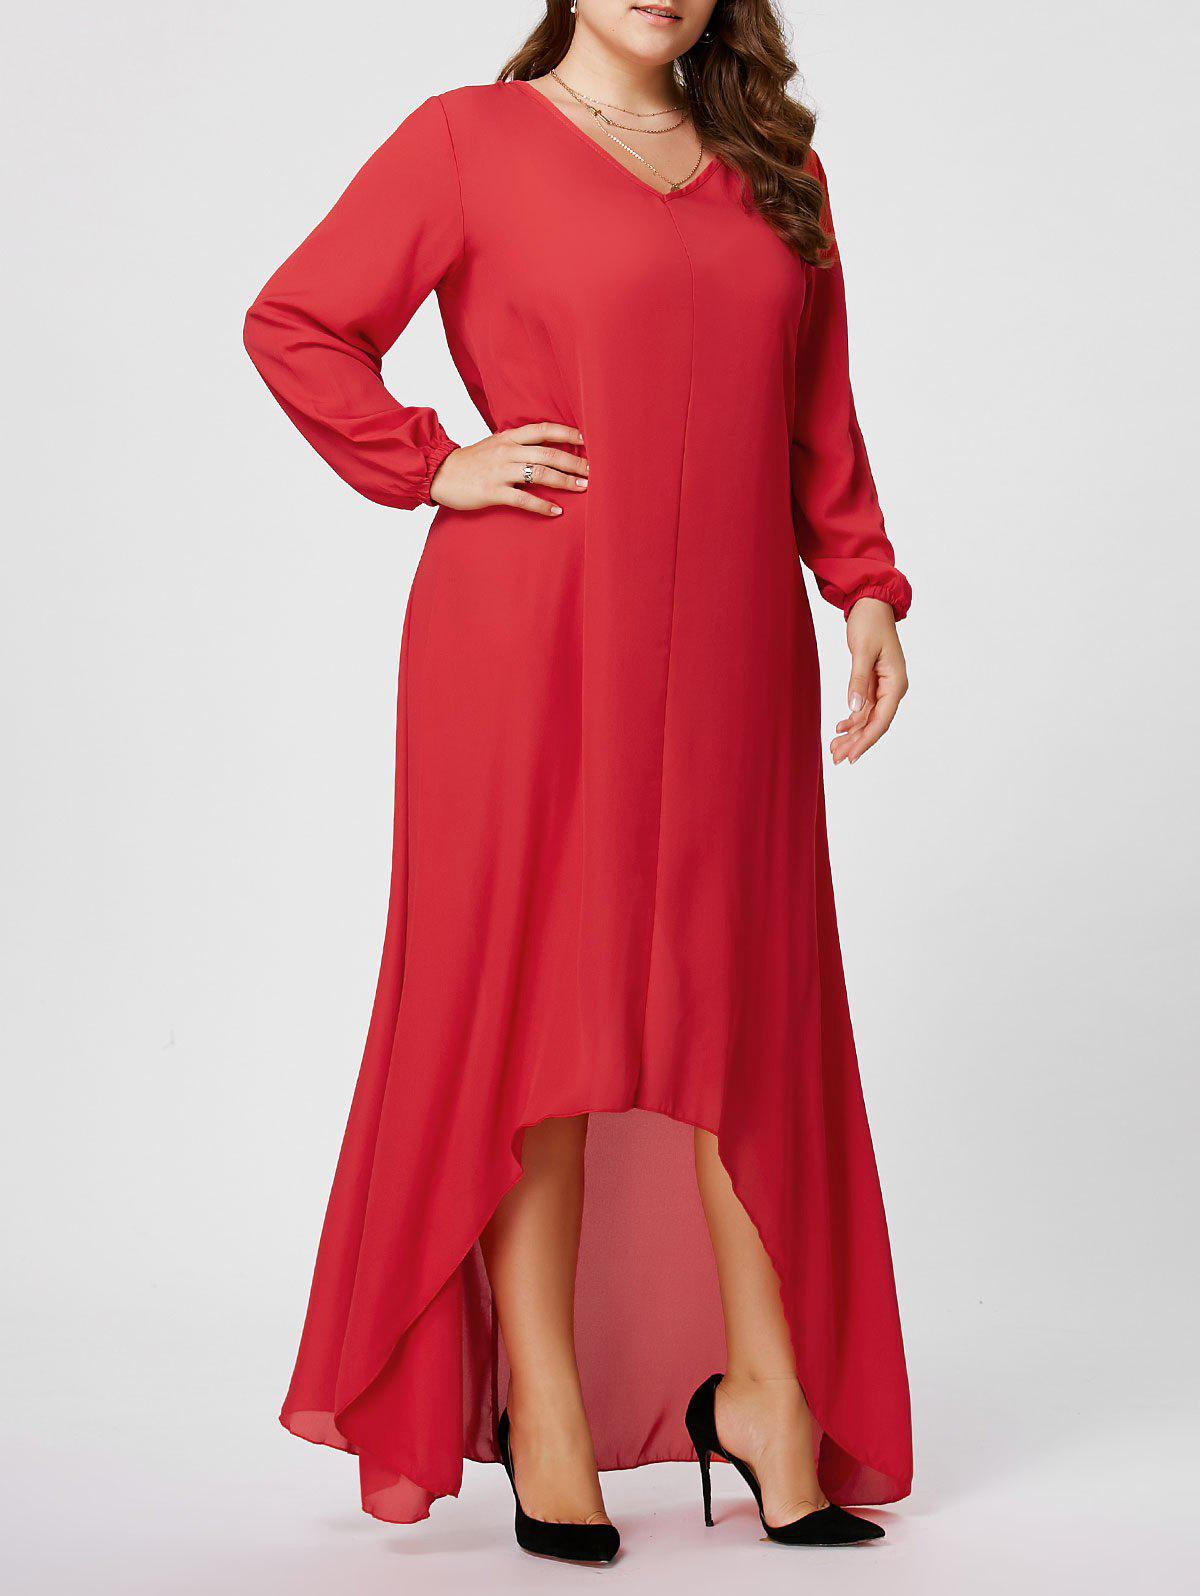 Plus Size High Low Maxi Chiffon Flowy Dress with Sleeves - RED 3XL